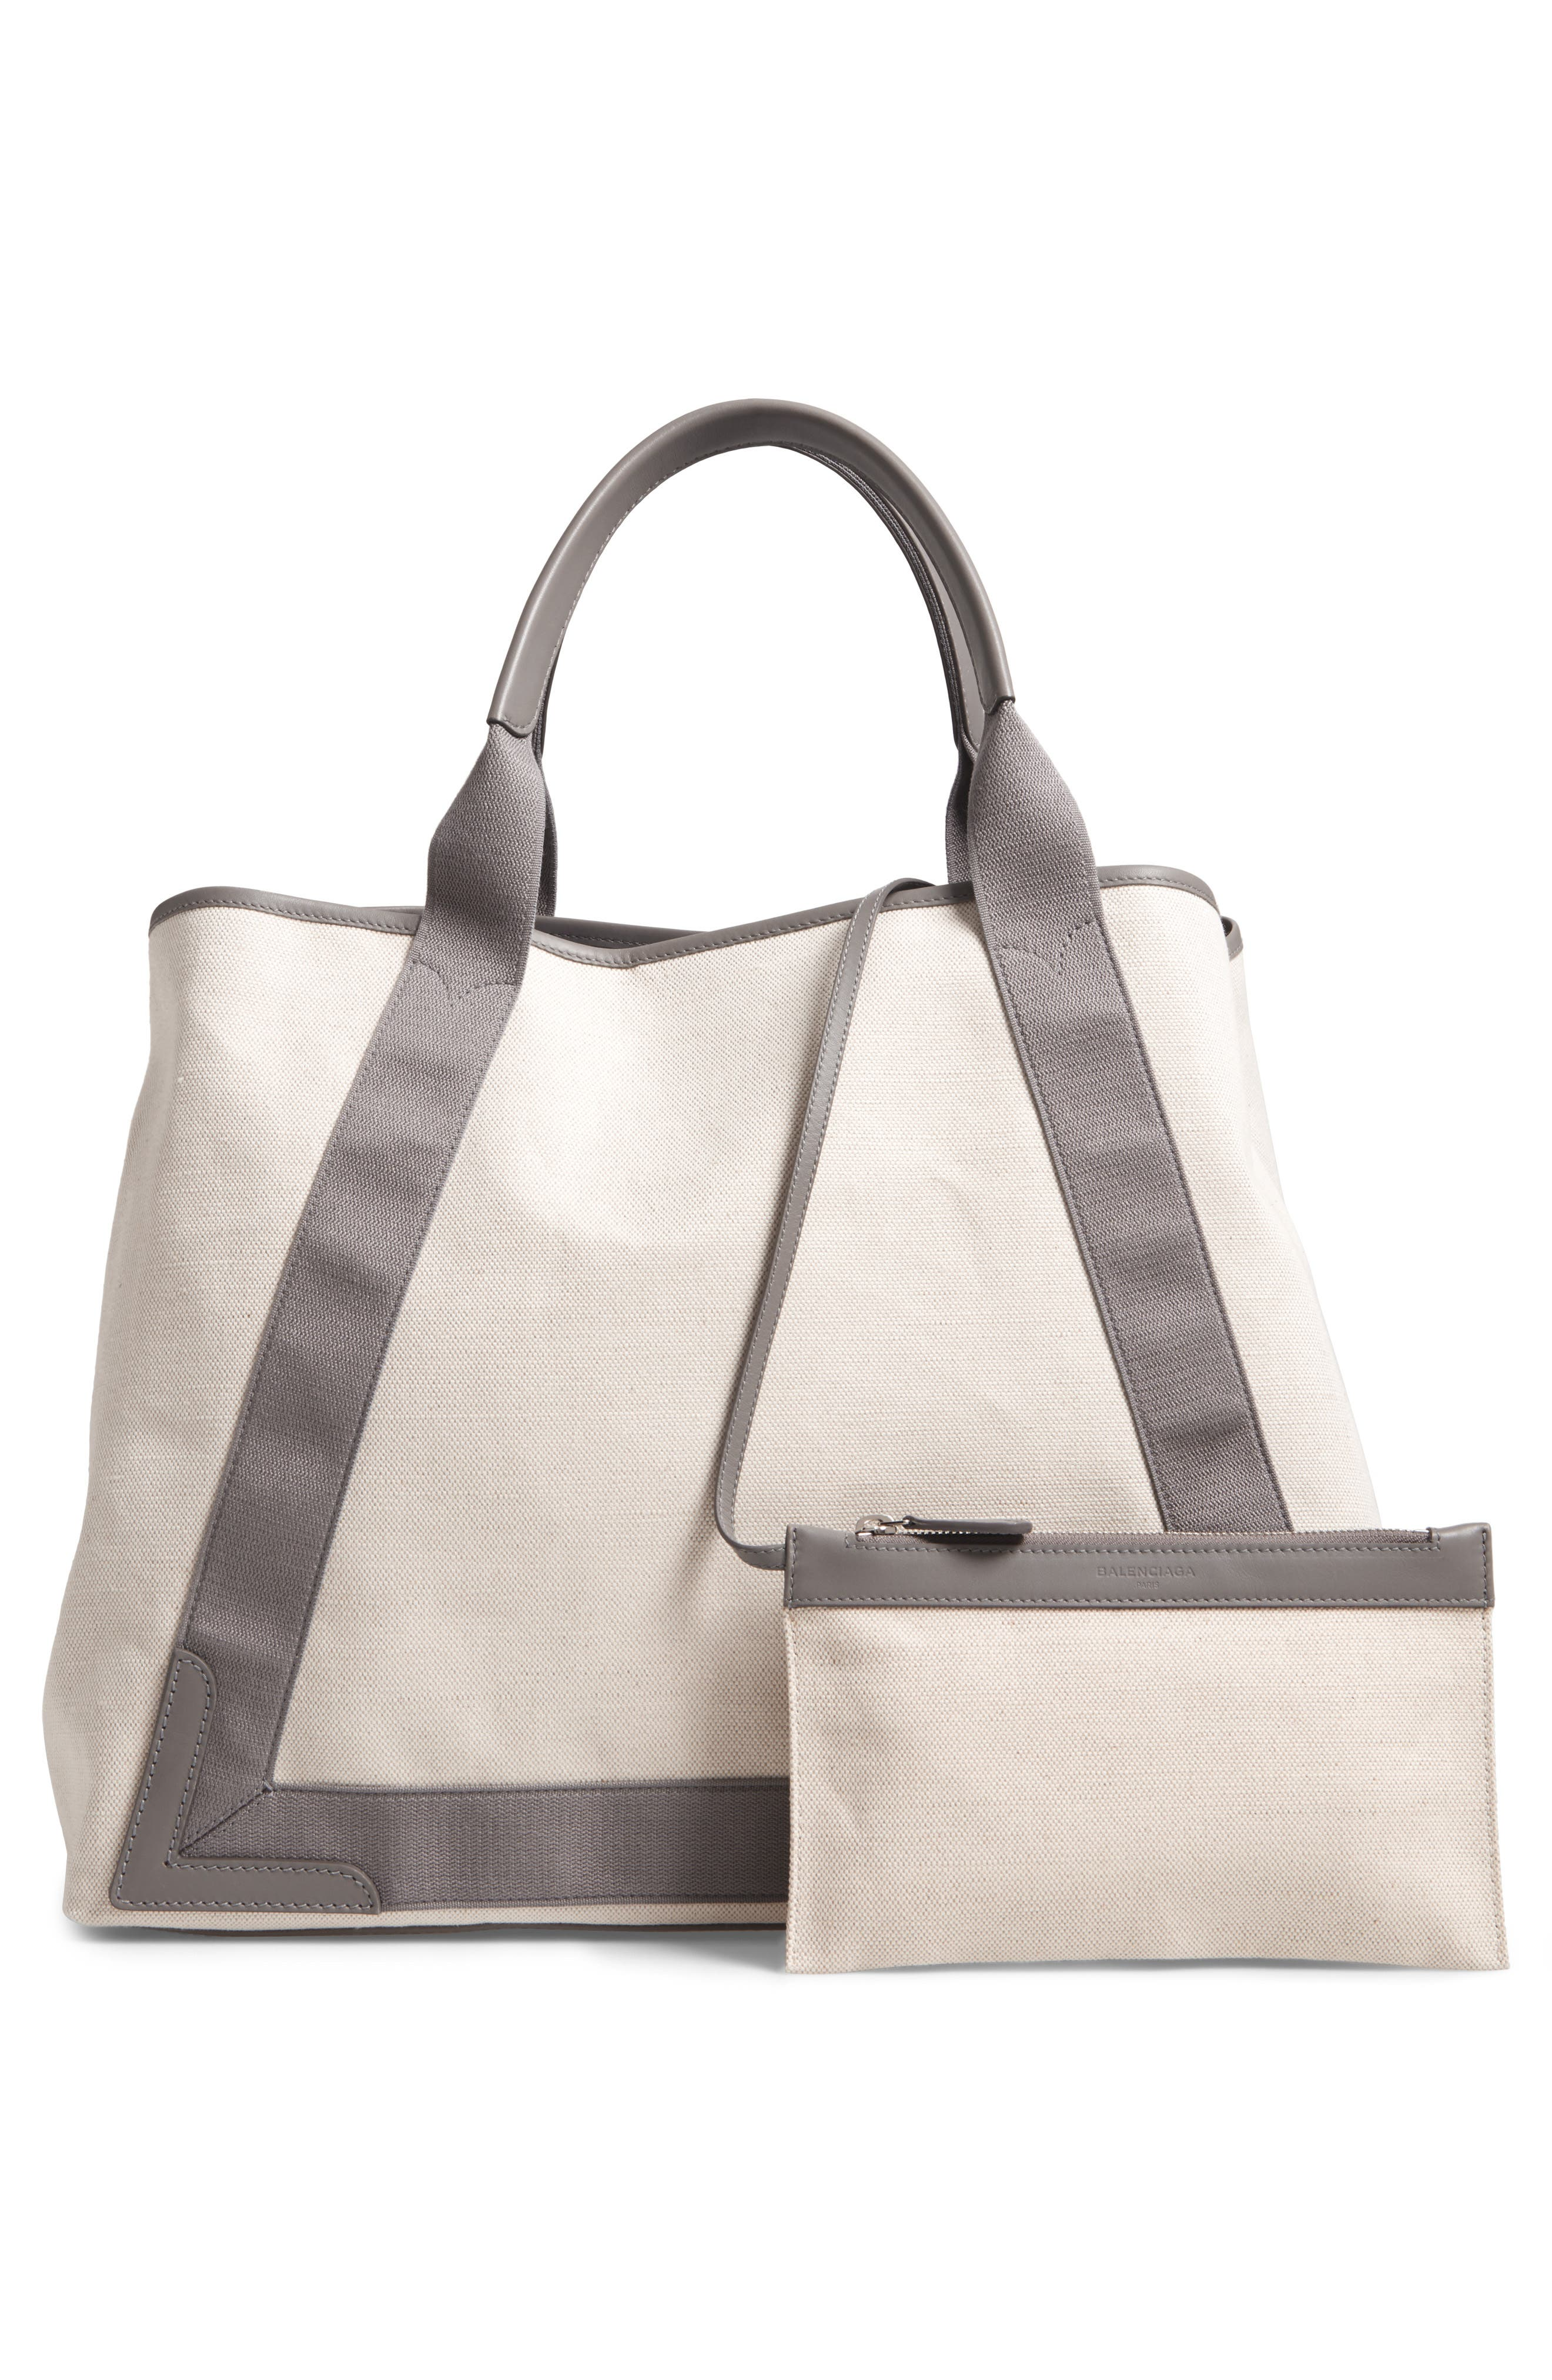 Medium Cabas Canvas Tote,                             Alternate thumbnail 3, color,                             2881 Gris Taupe/Nat/Grt